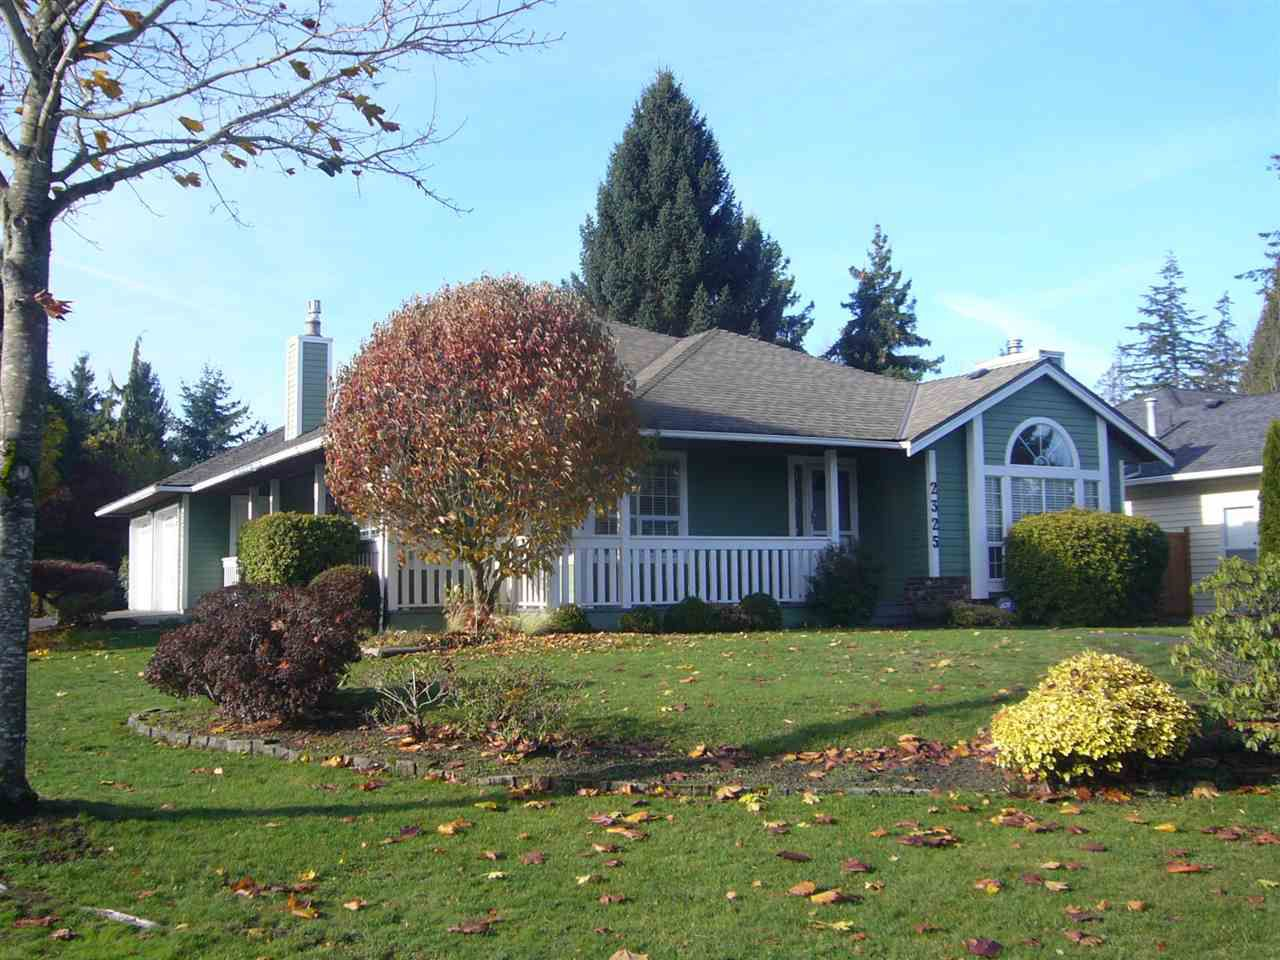 Main Photo: 2325 151A Street in Surrey: Sunnyside Park Surrey House for sale (South Surrey White Rock)  : MLS®# R2322221